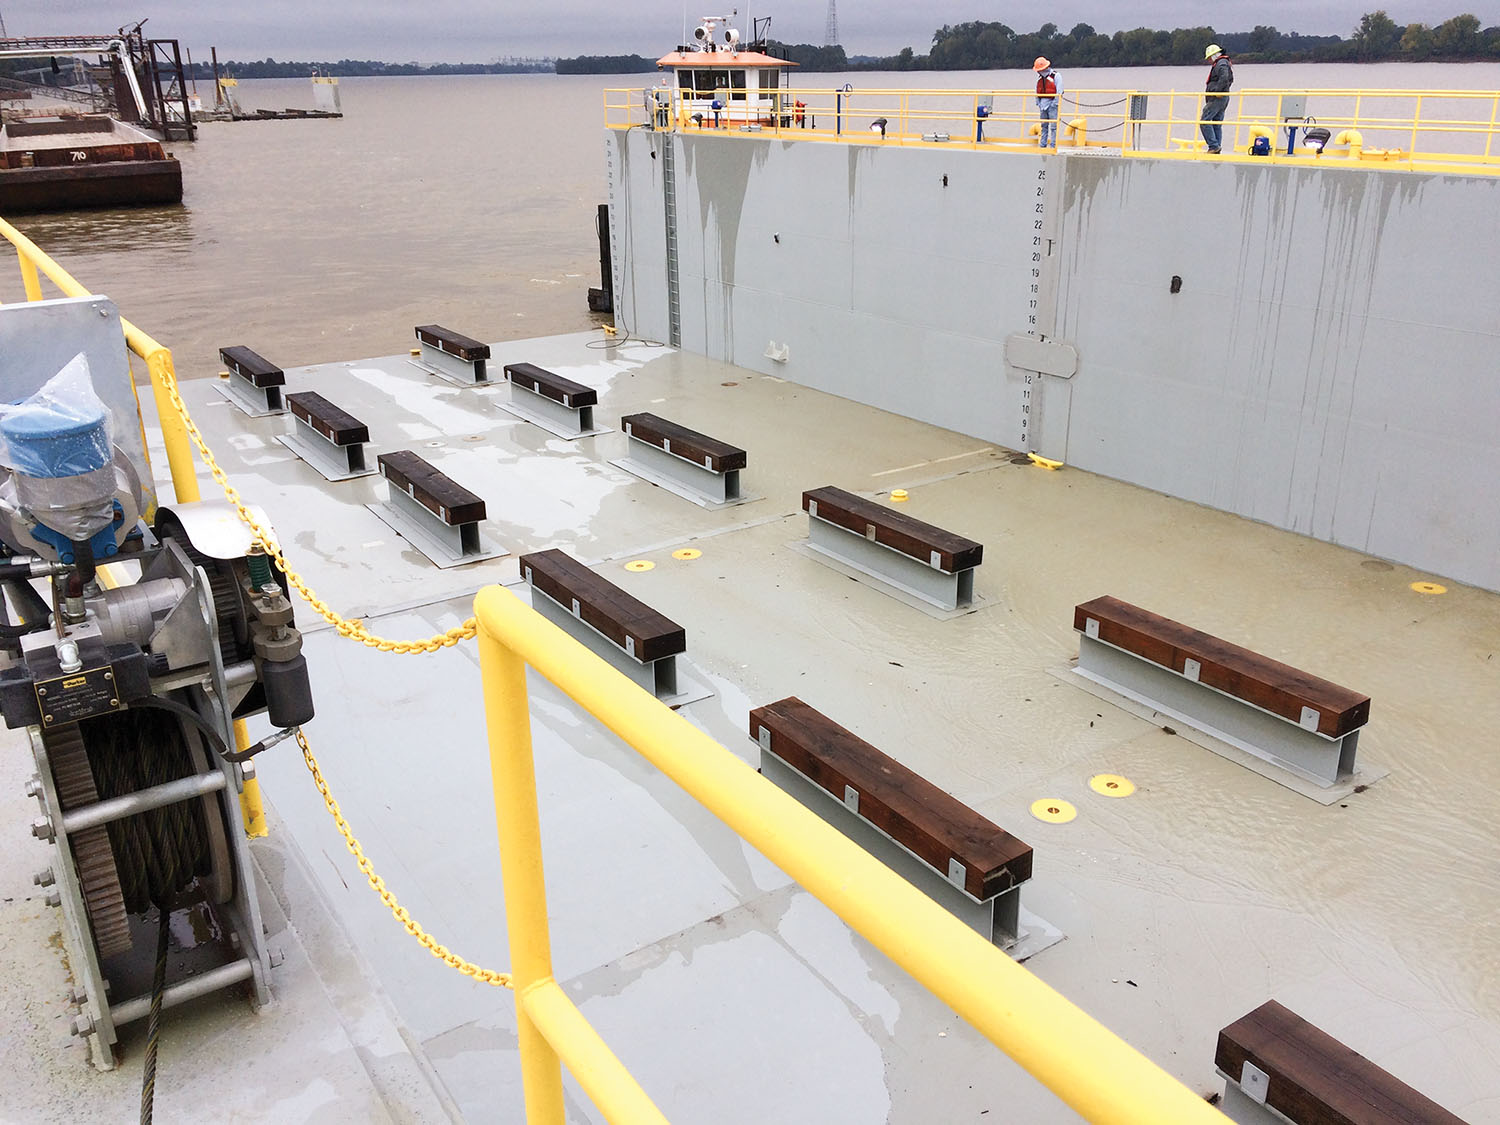 Yager Marine unveiled its new 120-foot drydock at its Owensboro, Ky., shipyard in November. The drydock was designed by The Shearer Group of Houston, Texas. (Photo courtesy of Yager Marine Industries)